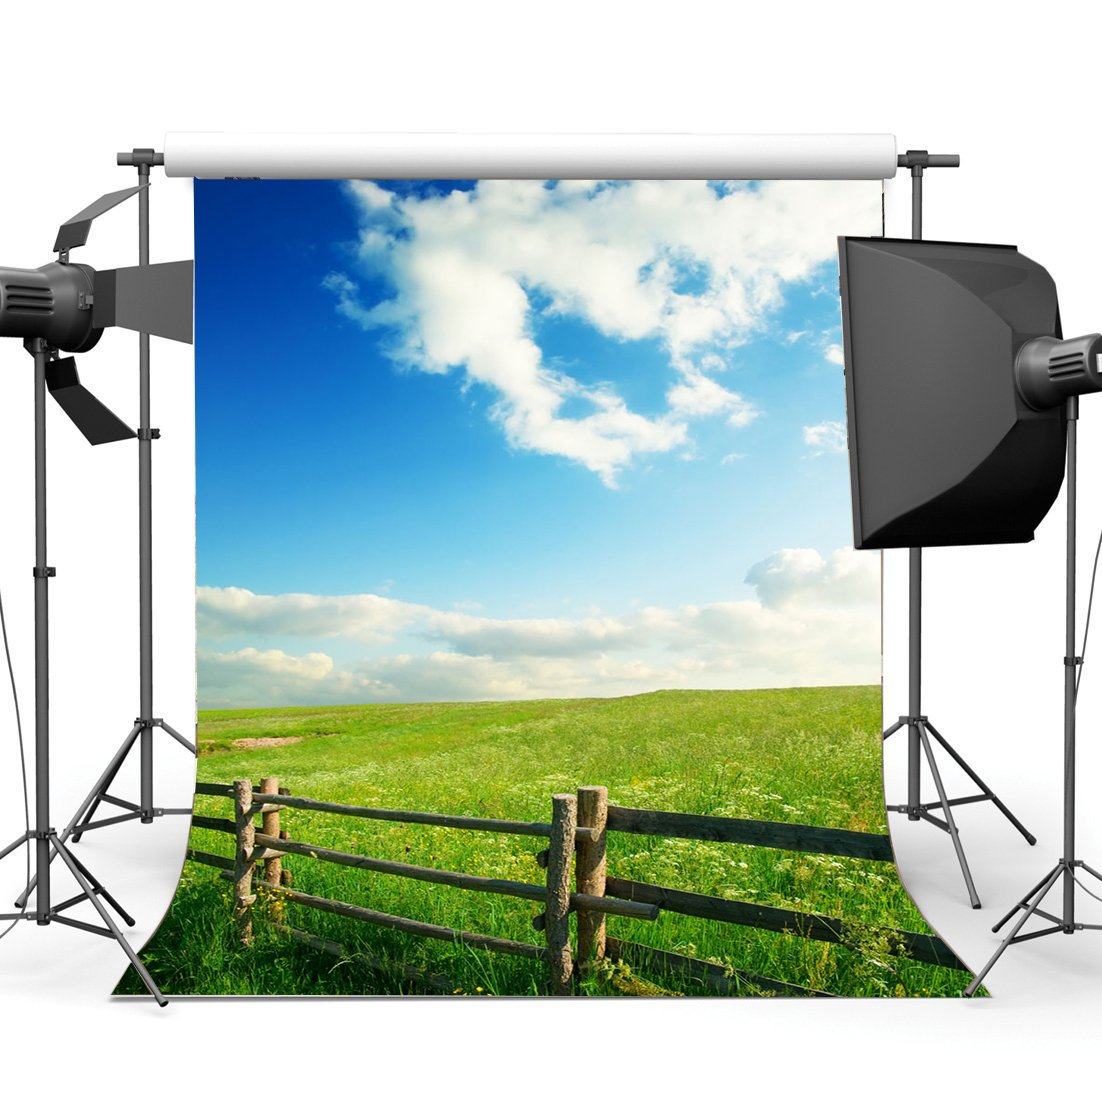 Rustic Farmland Backdrop Shabby Wood Green Grass Wheat Field Backdrops Blue Sky White Cloud Nature Spring Photography Background-in Photo Studio Accessories from Consumer Electronics